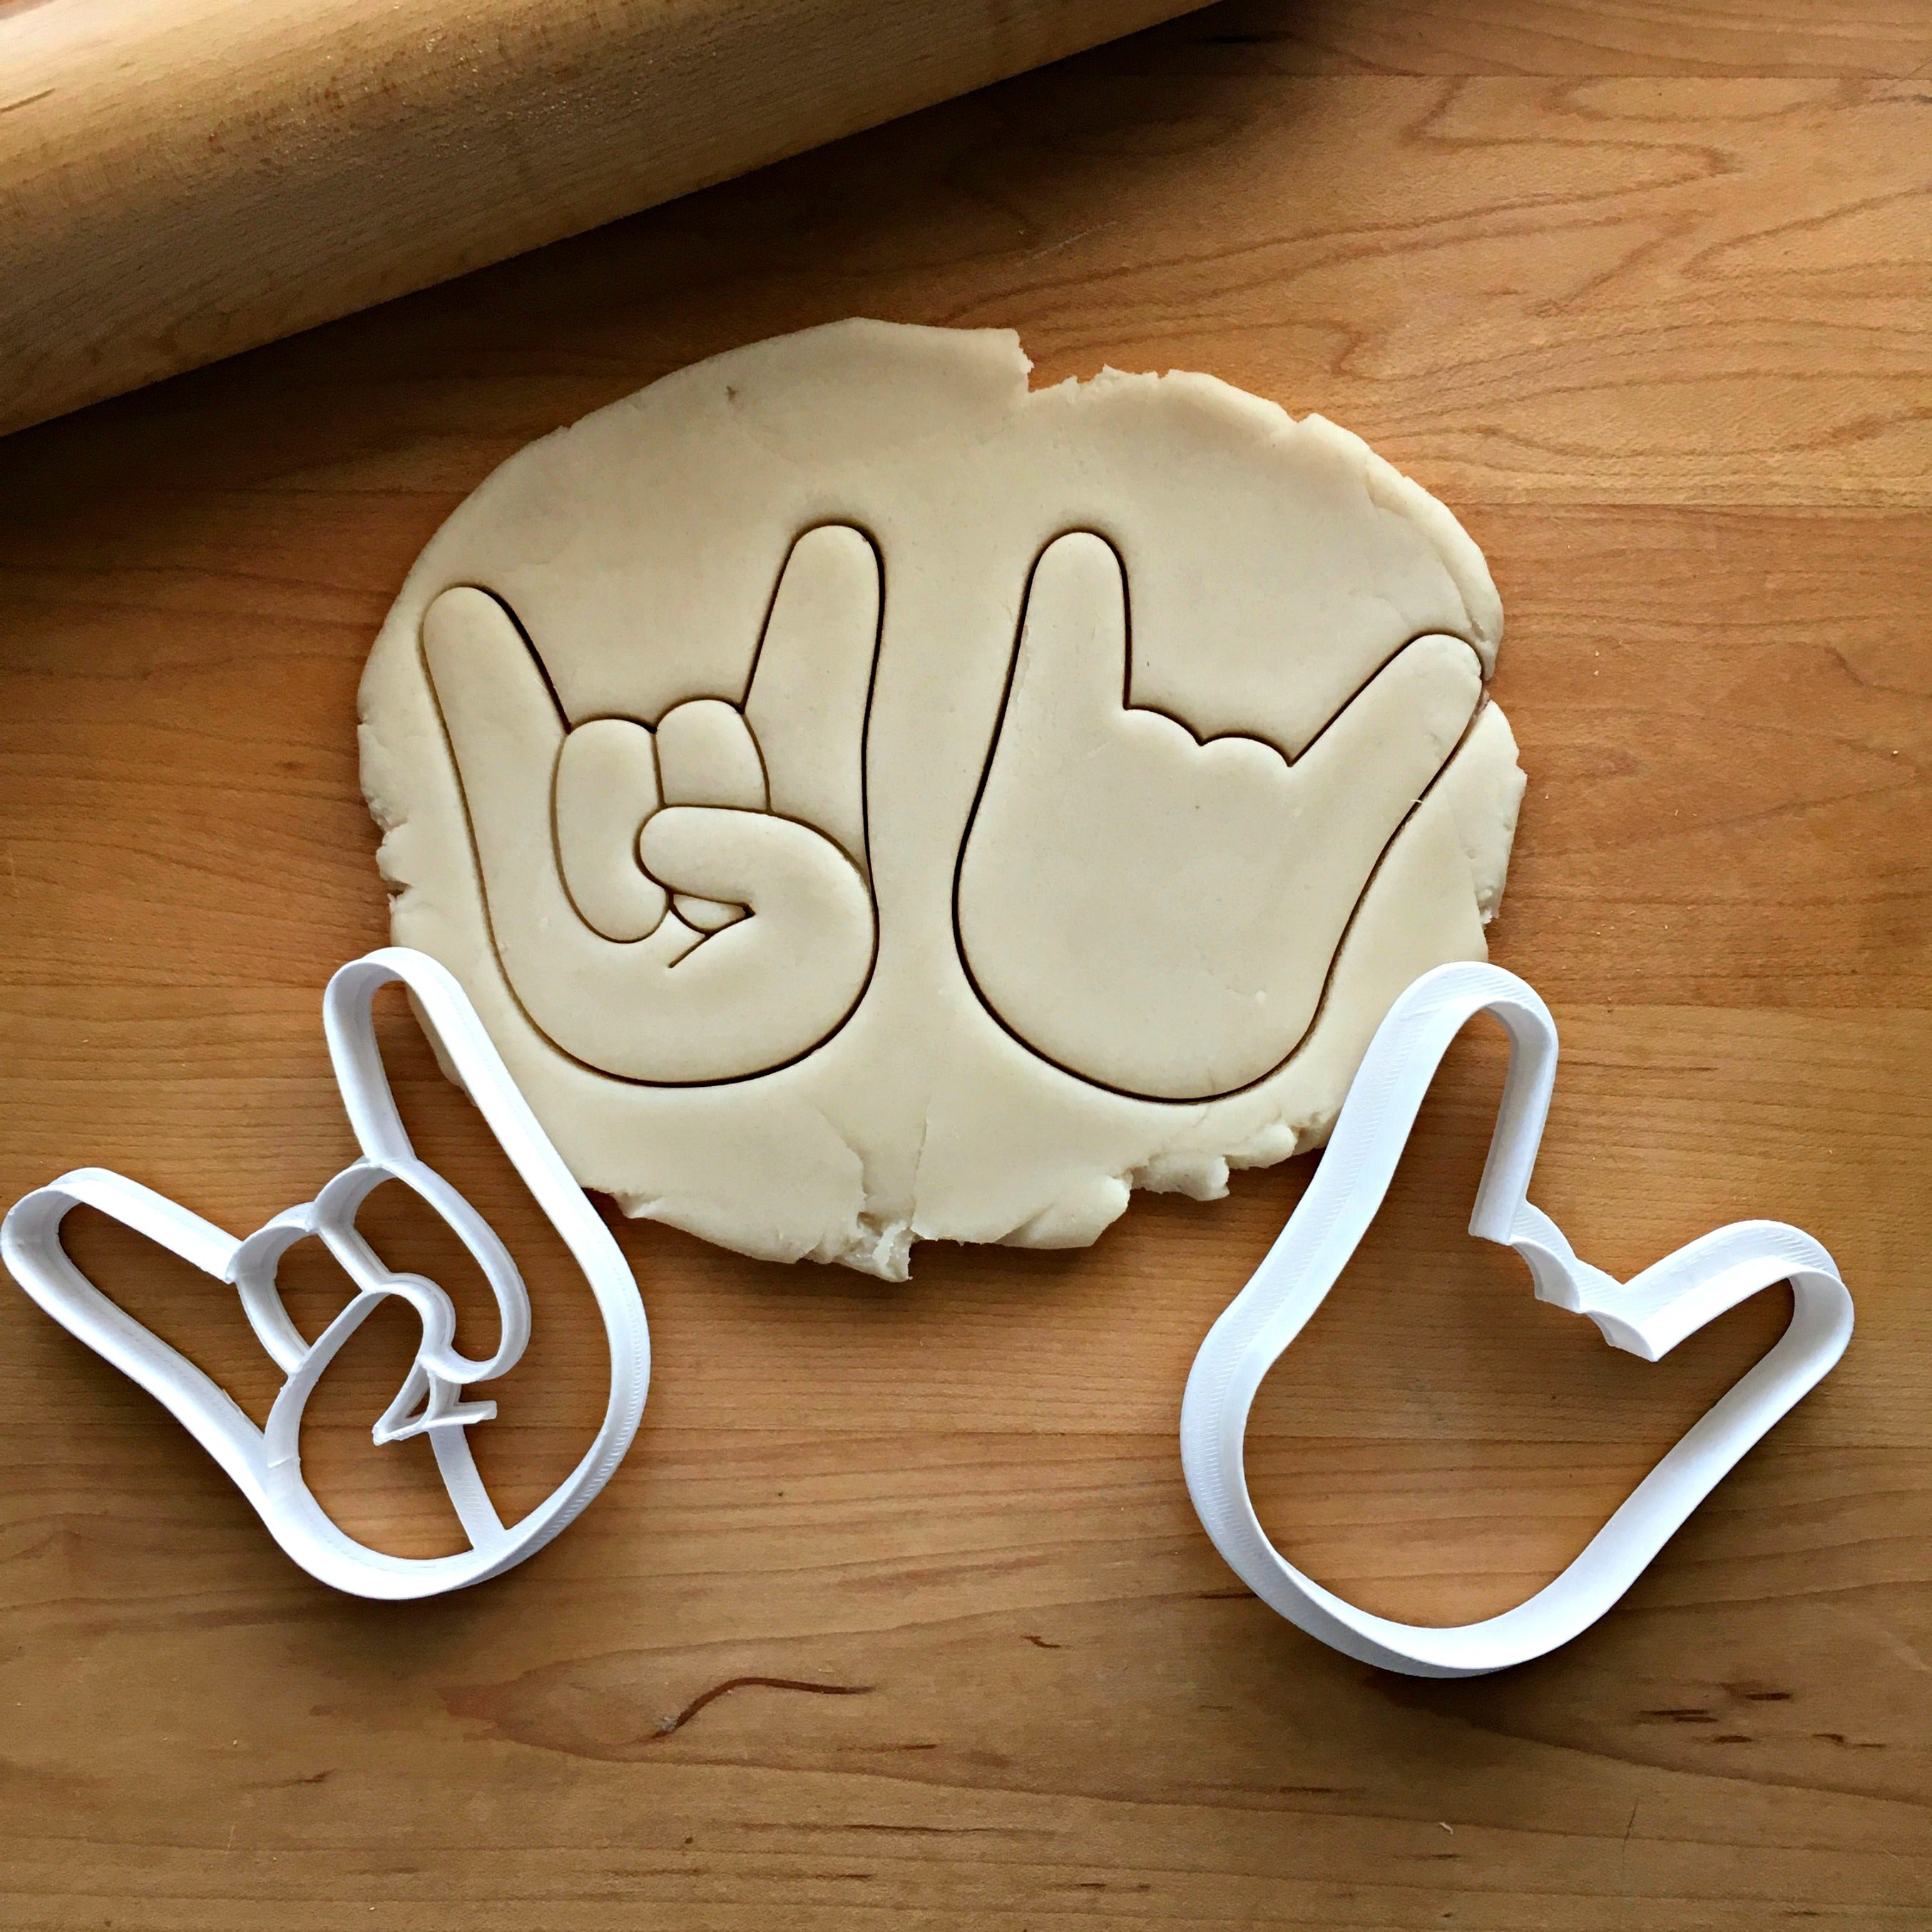 Set of 2 Sign of the Horns Cookie Cutters/Dishwasher Safe